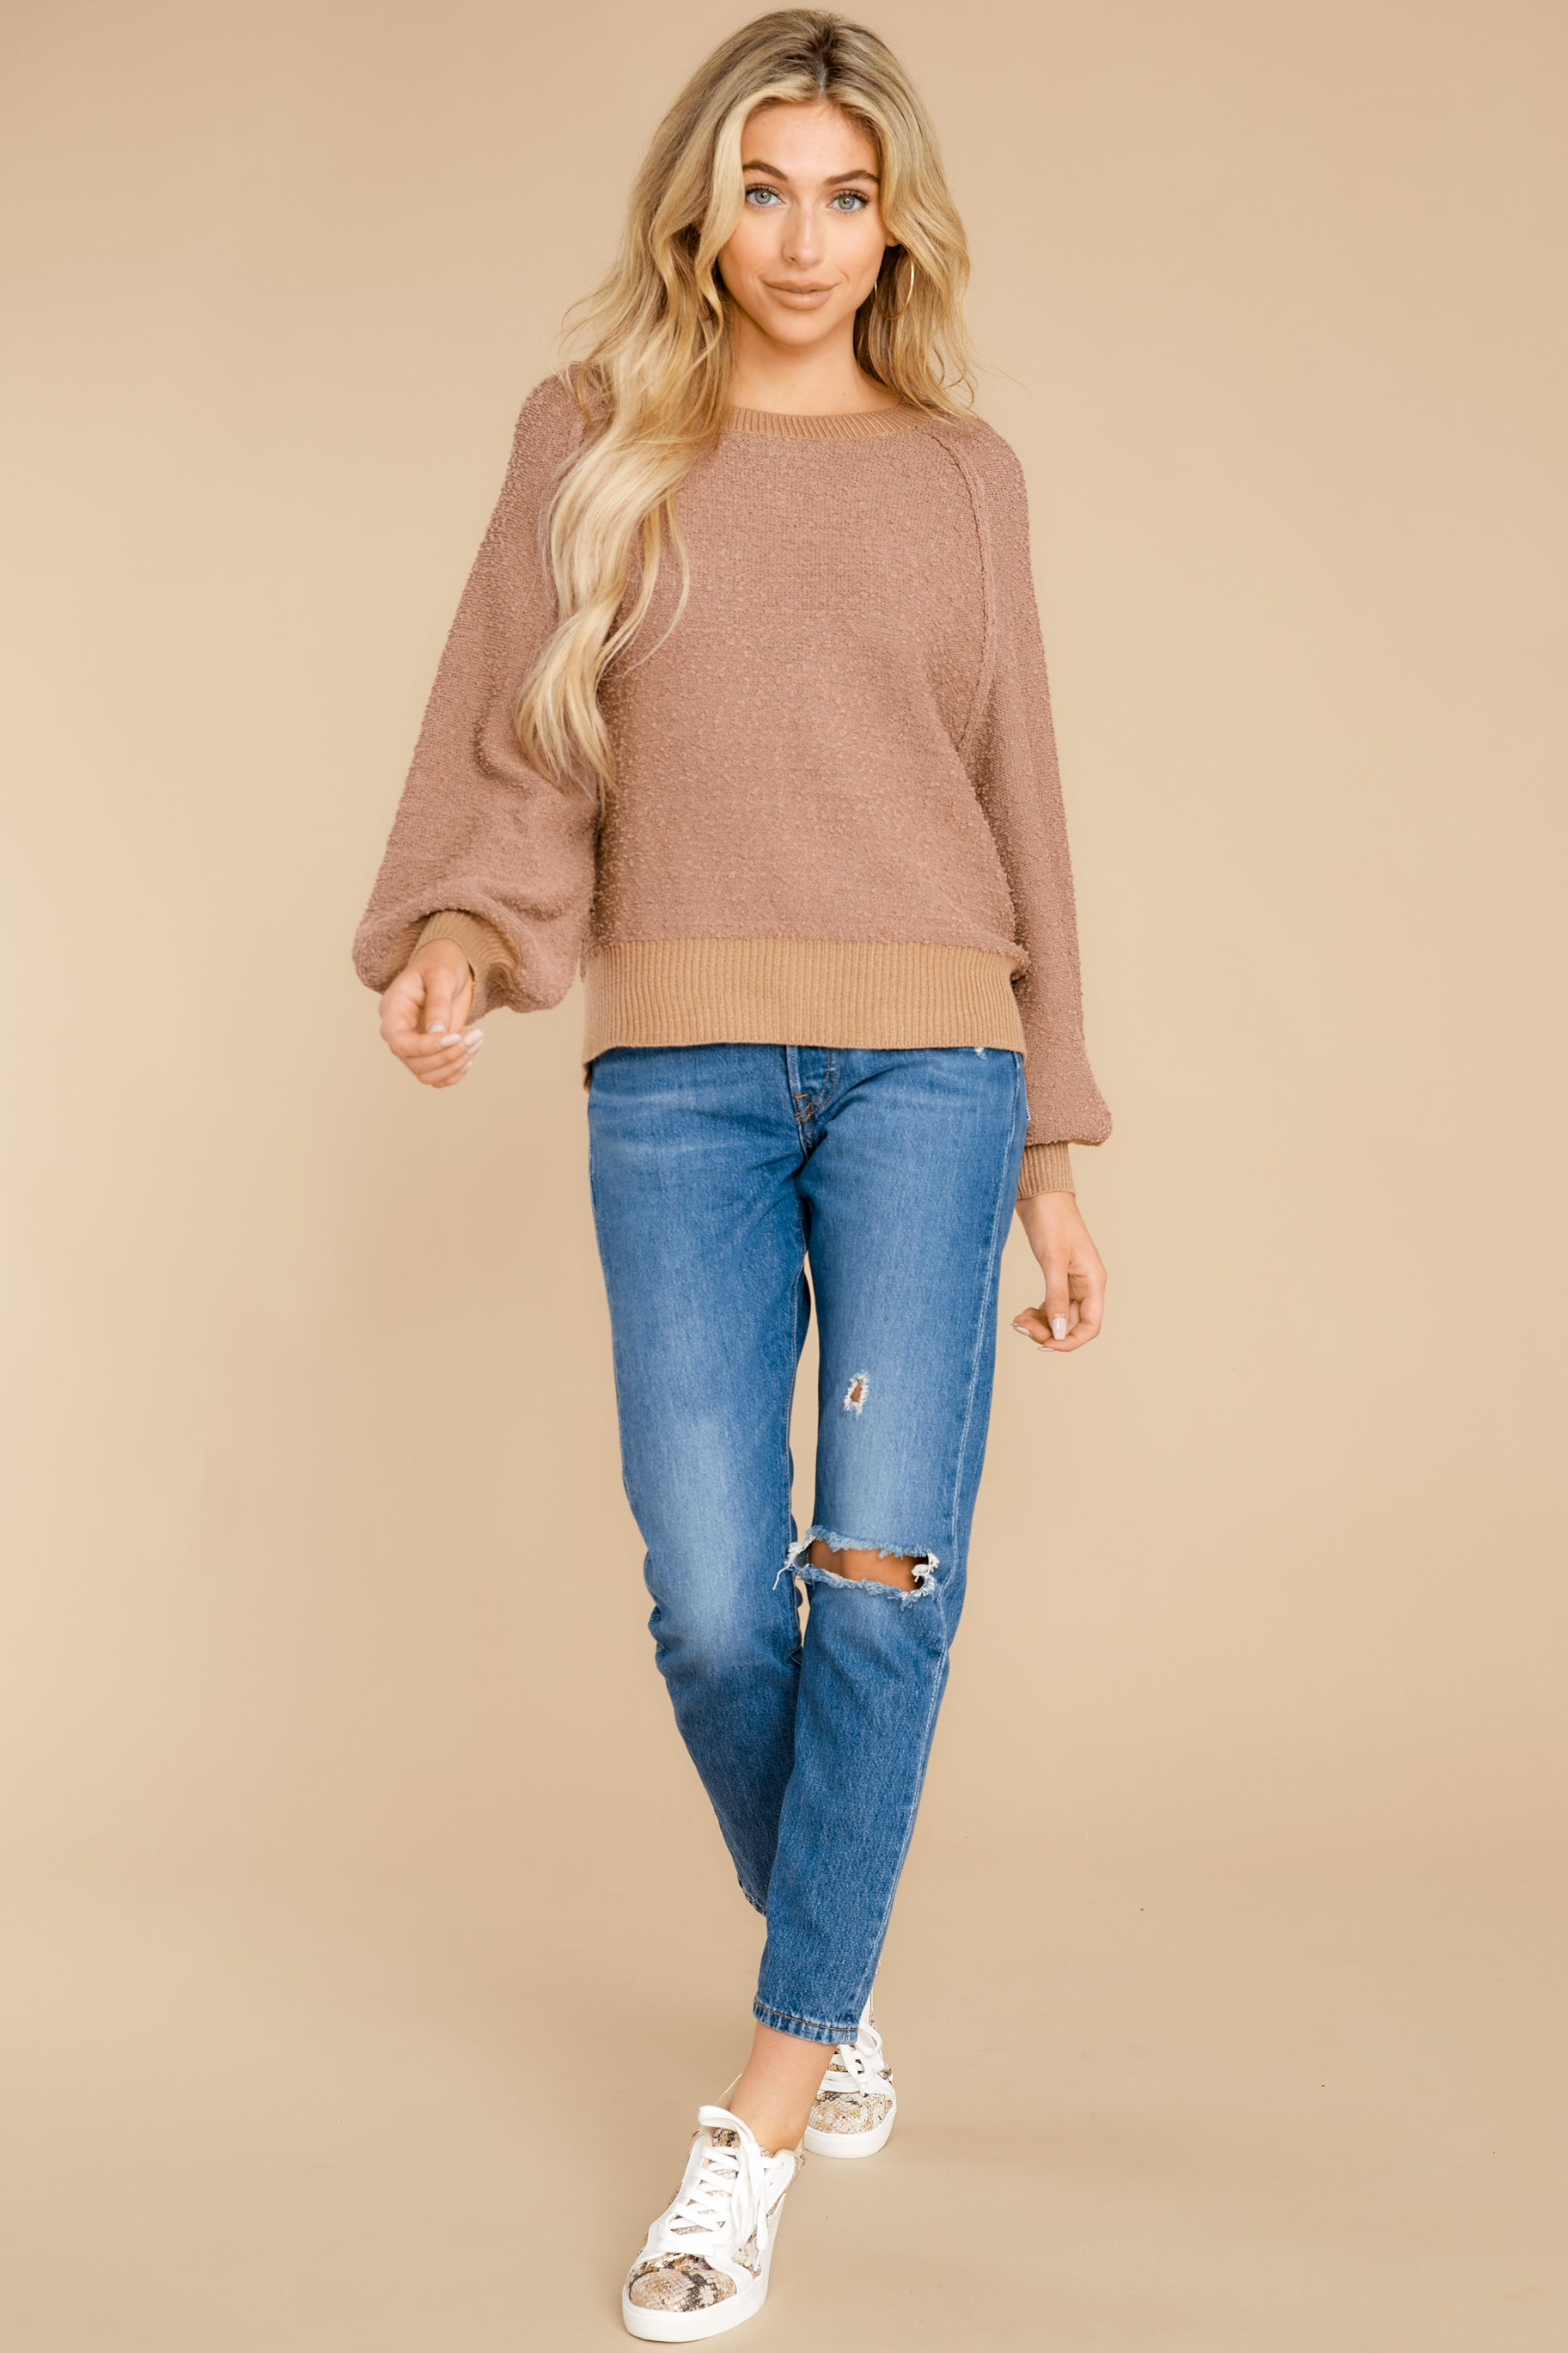 5 Feeling Carefree Mocha Sweater at reddress.com